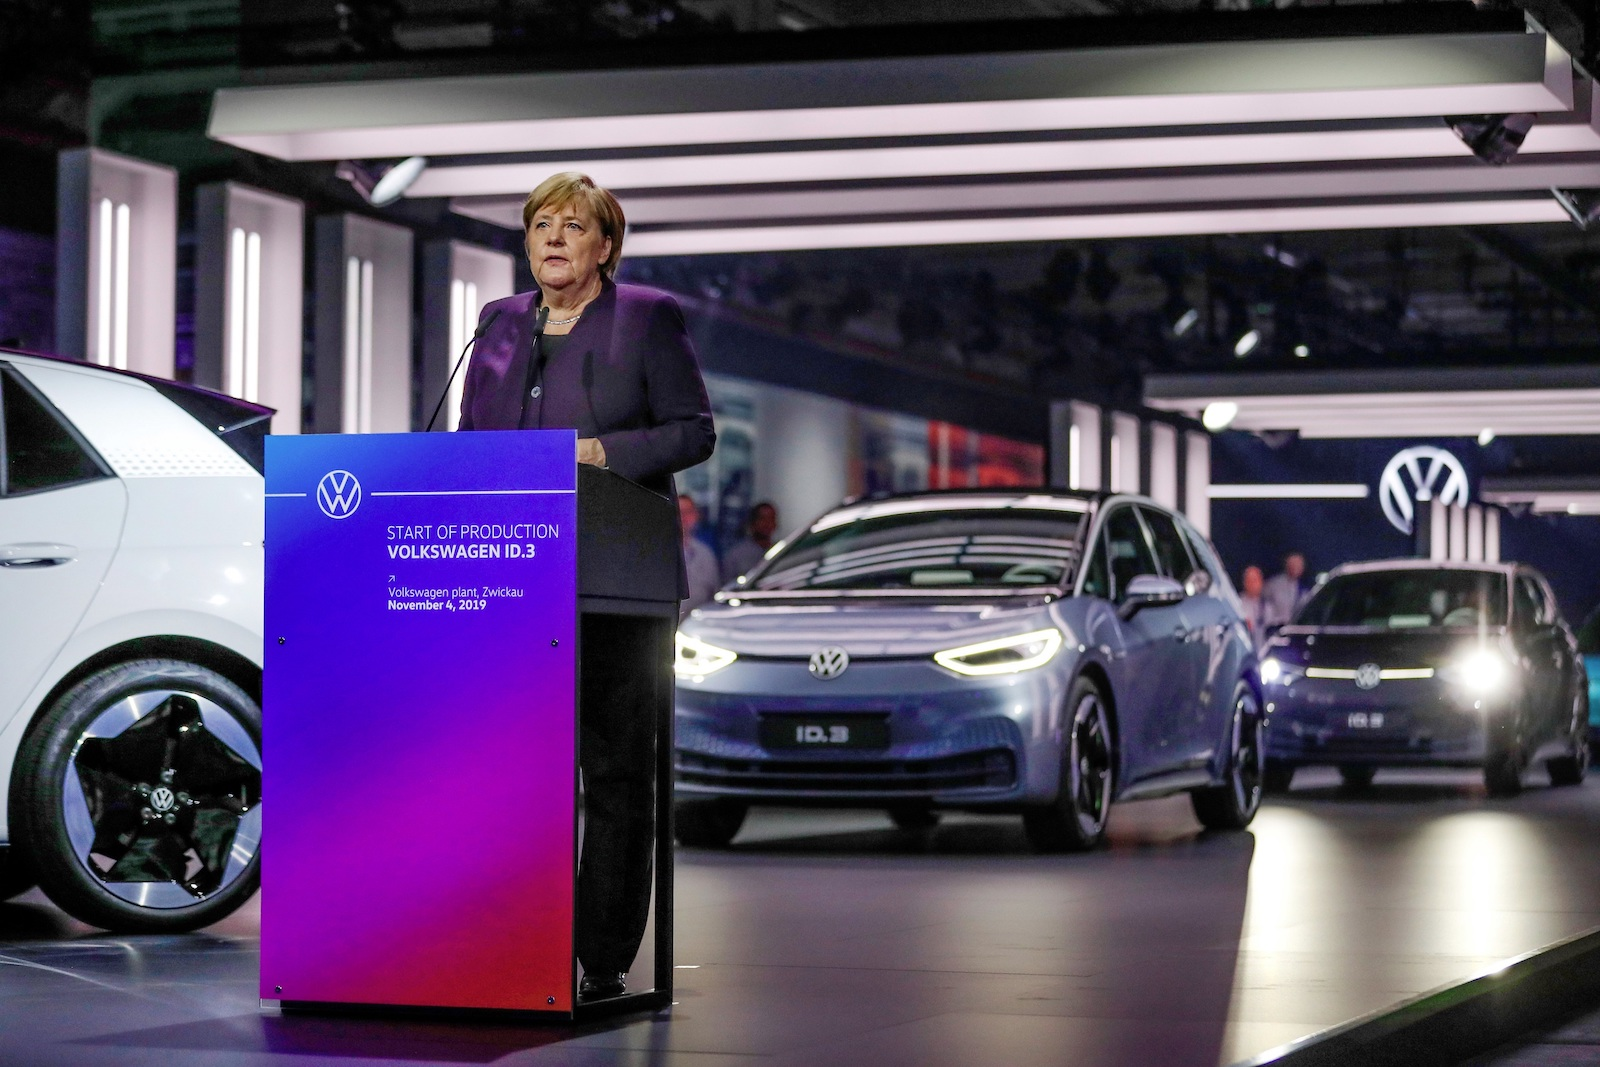 Volkswagen Initiates System Changeover To E Mobility ñ Product